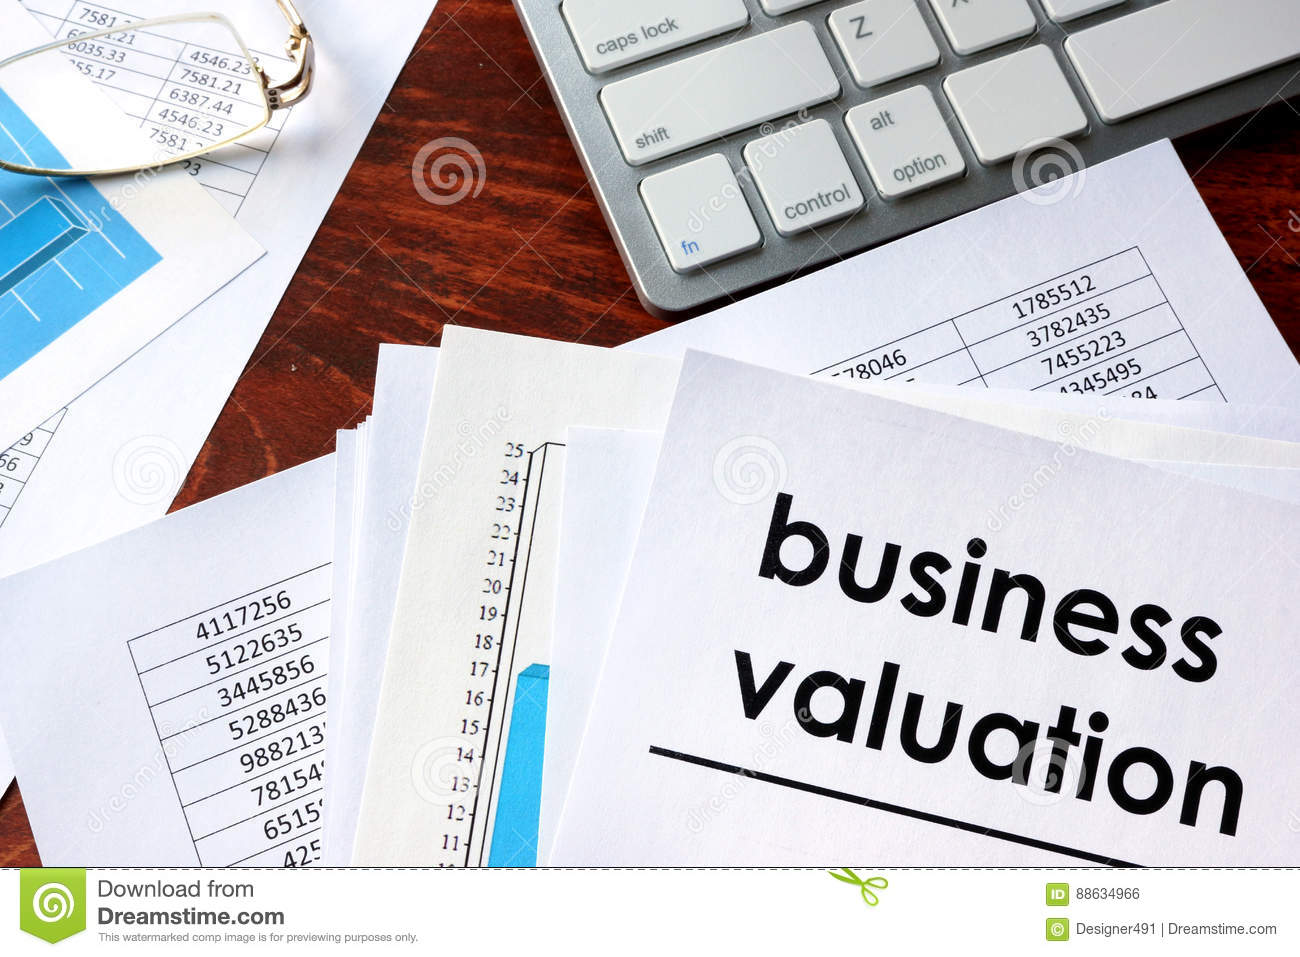 business valuation Business valuation services that dig deep rsm's professionals use the latest market data and valuation techniques to ensure accuracy.